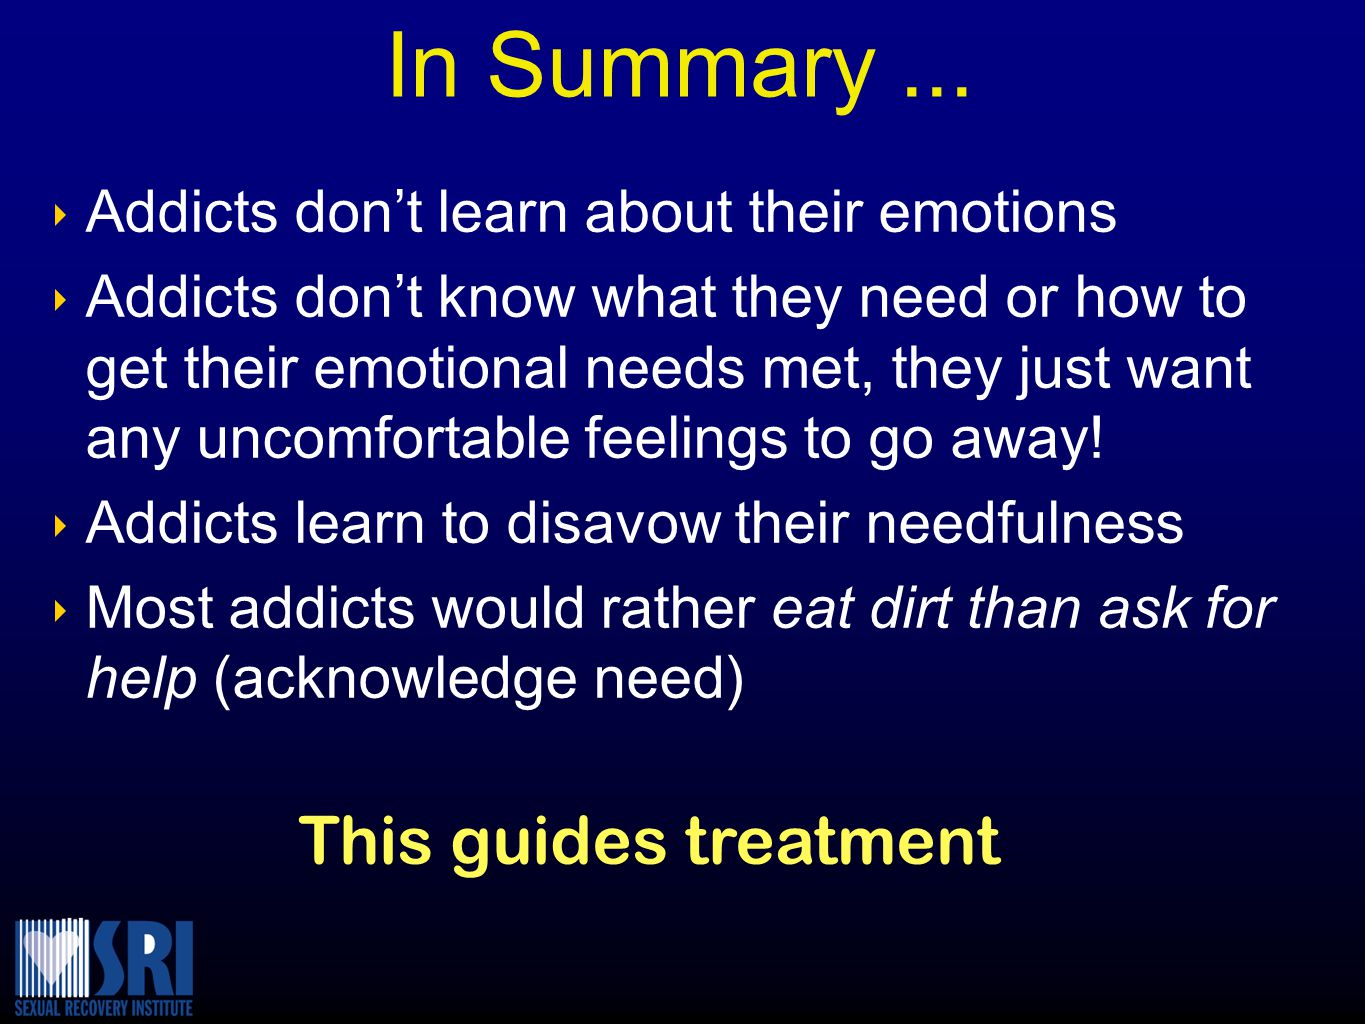 In Summary ... This guides treatment